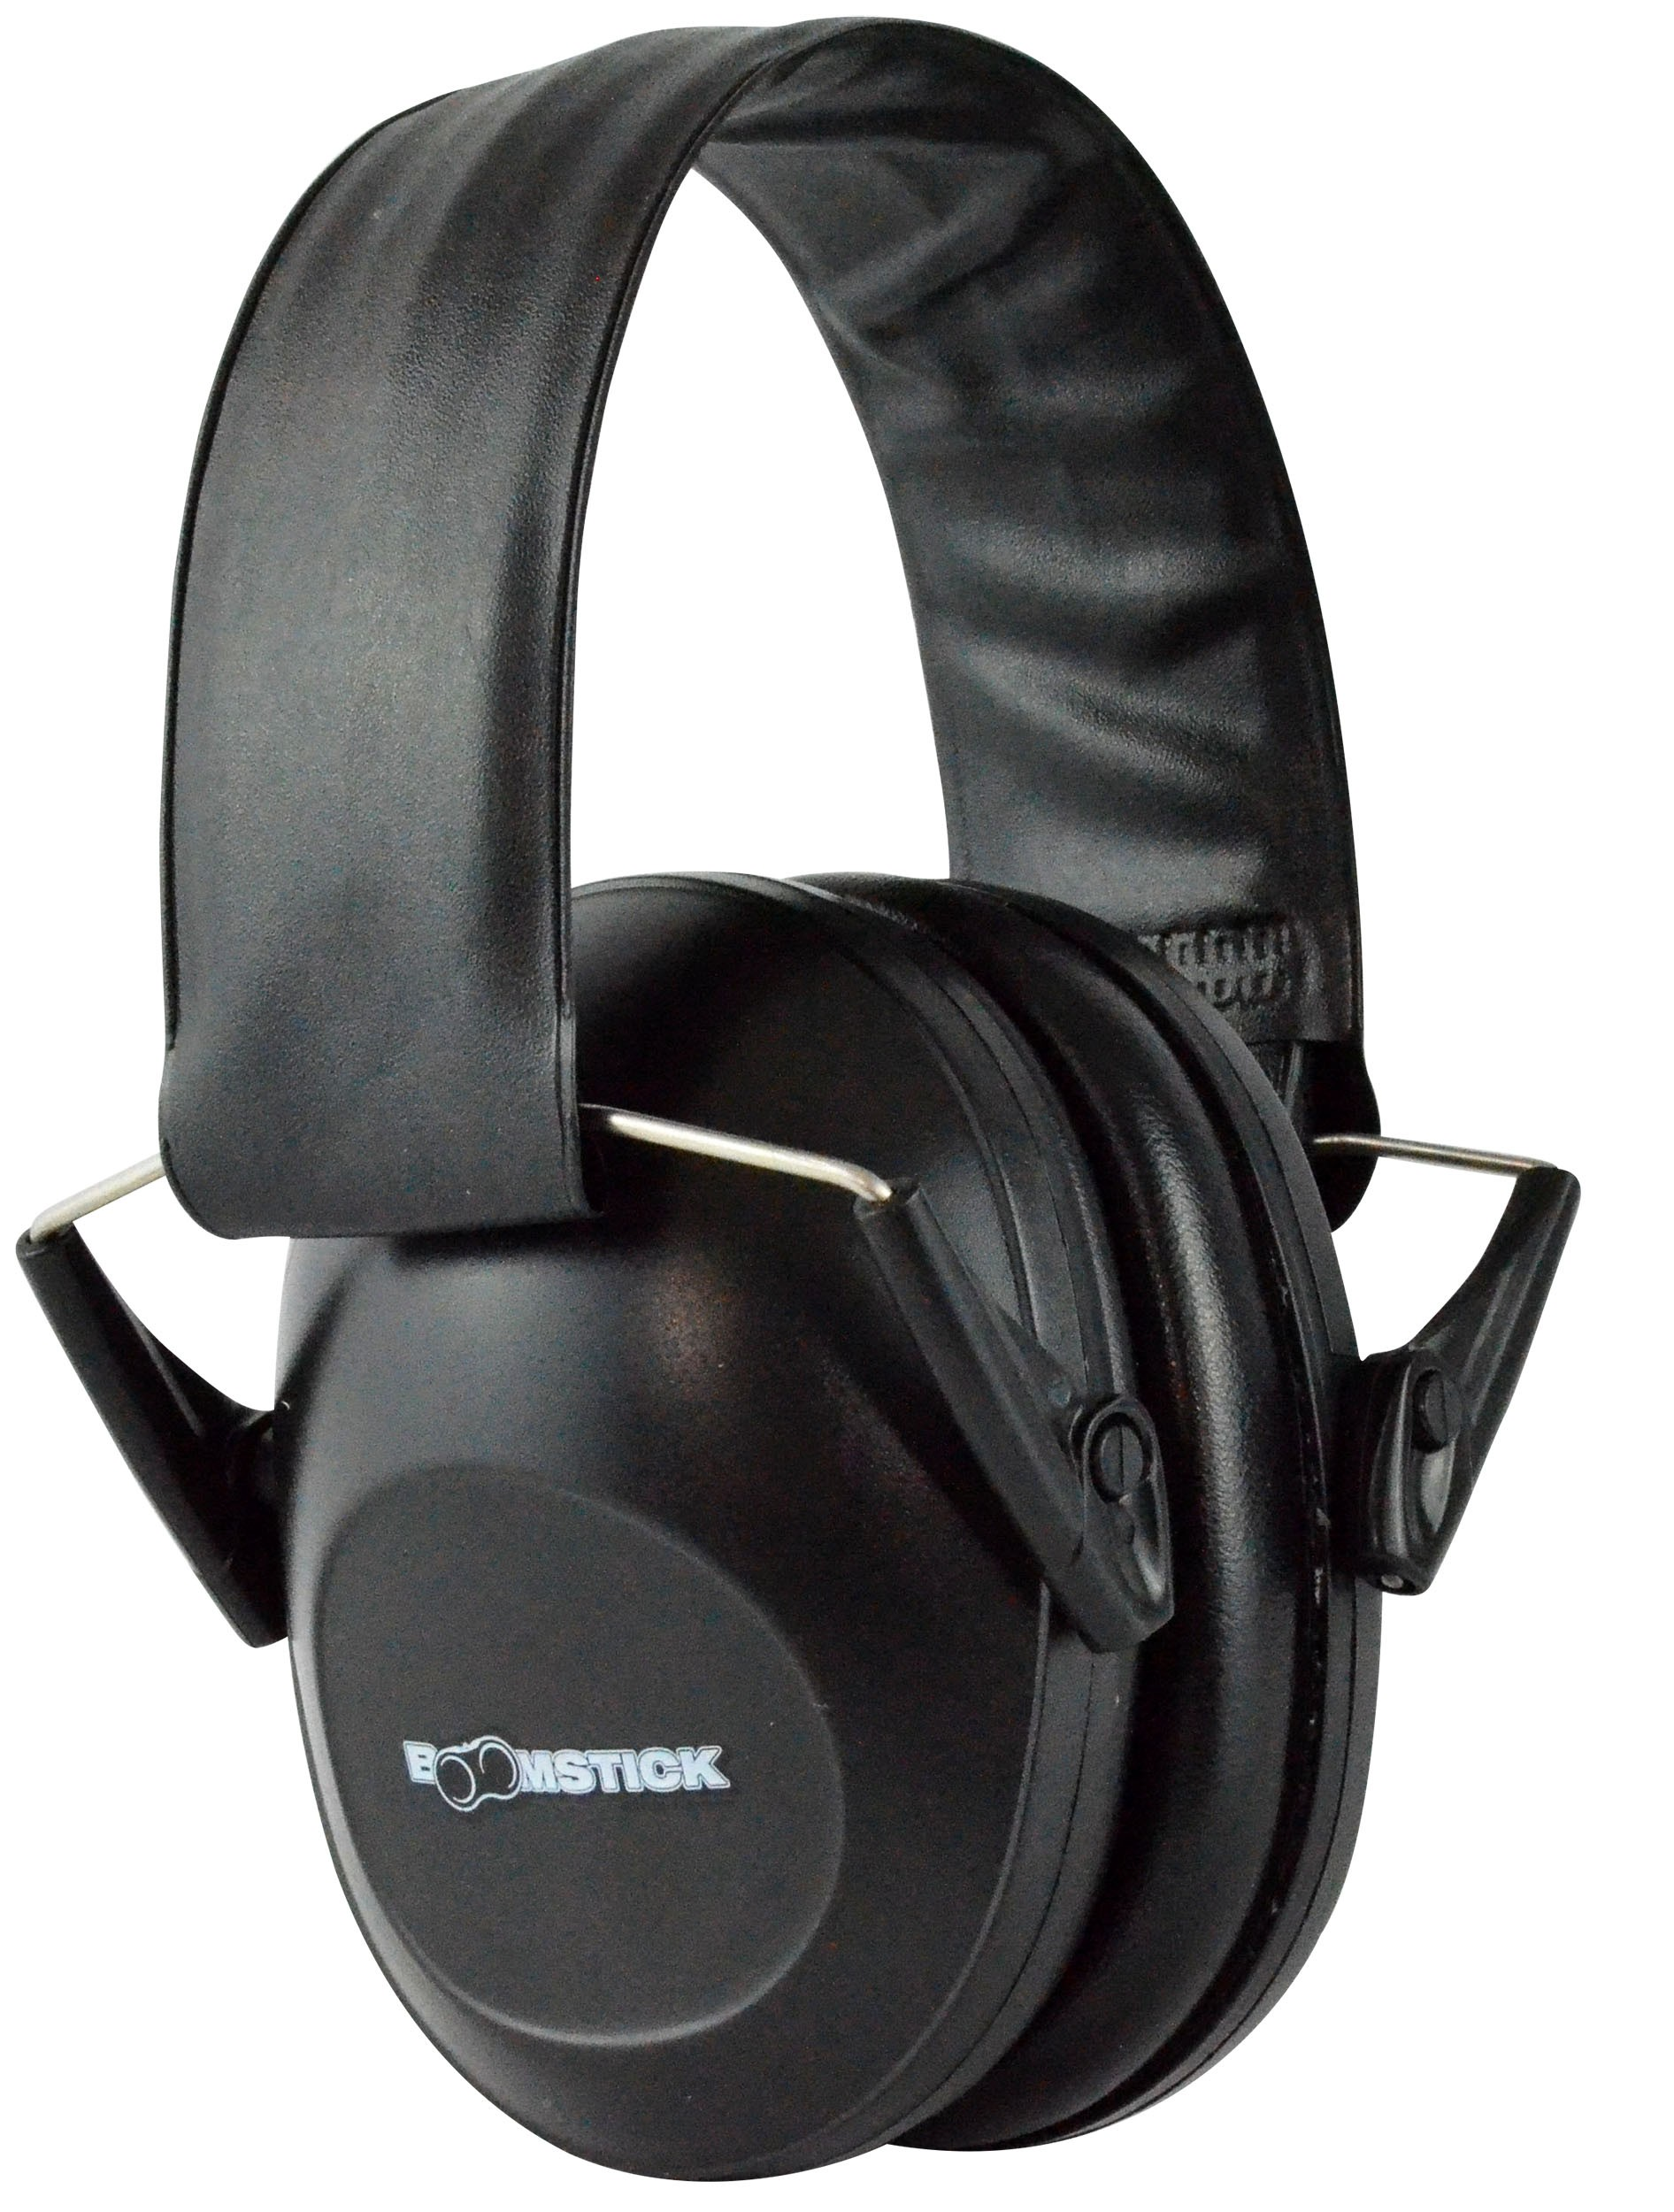 Black Ear Muff Hearing Protection